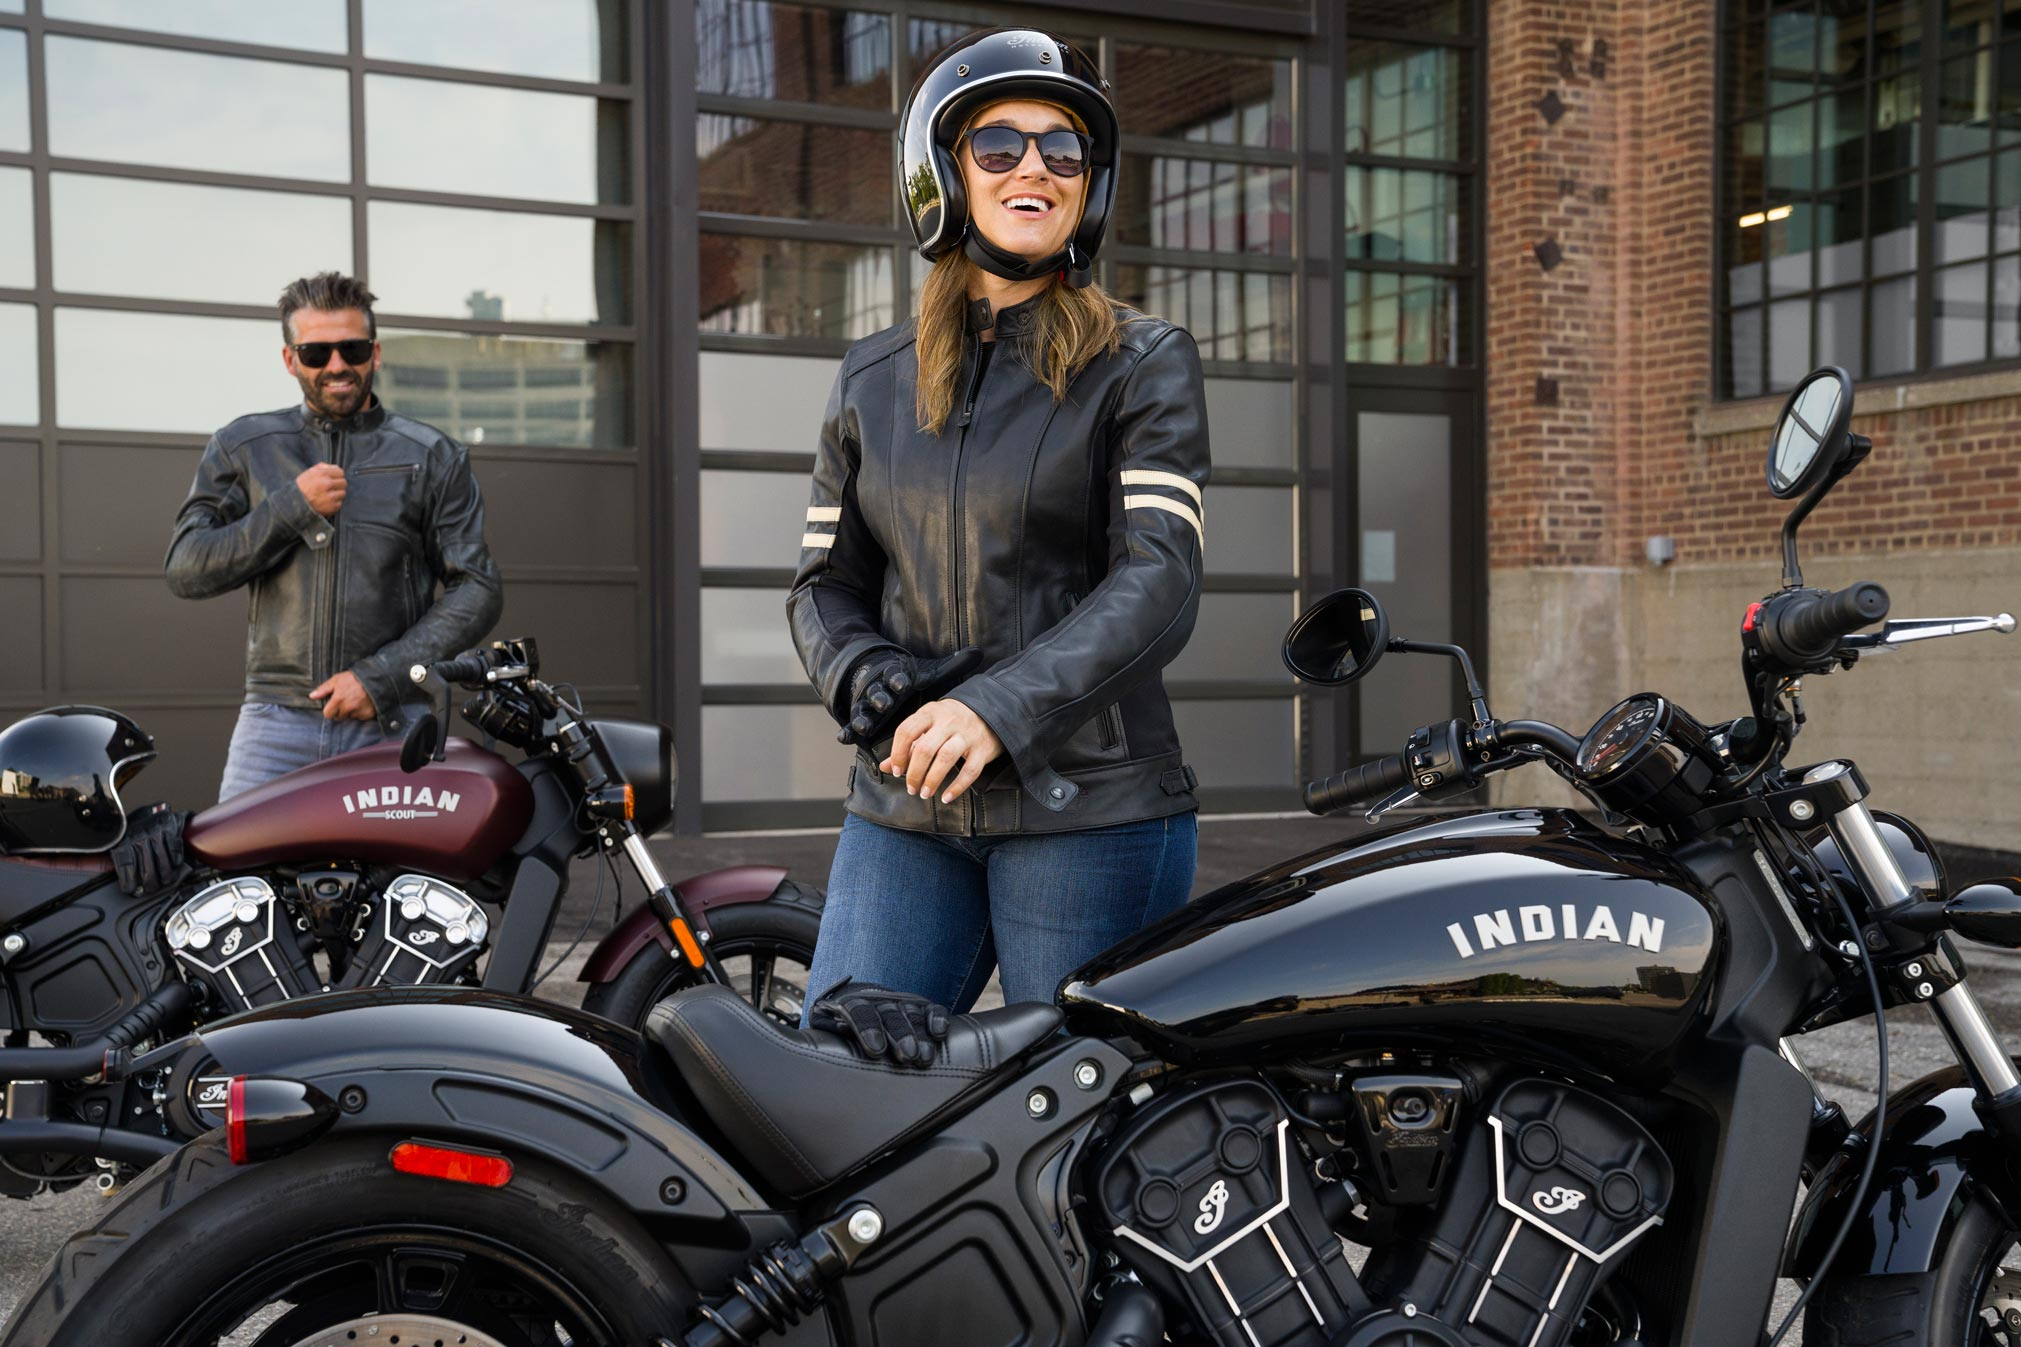 2021 Indian Motorcycle Guide Total Motorcycle